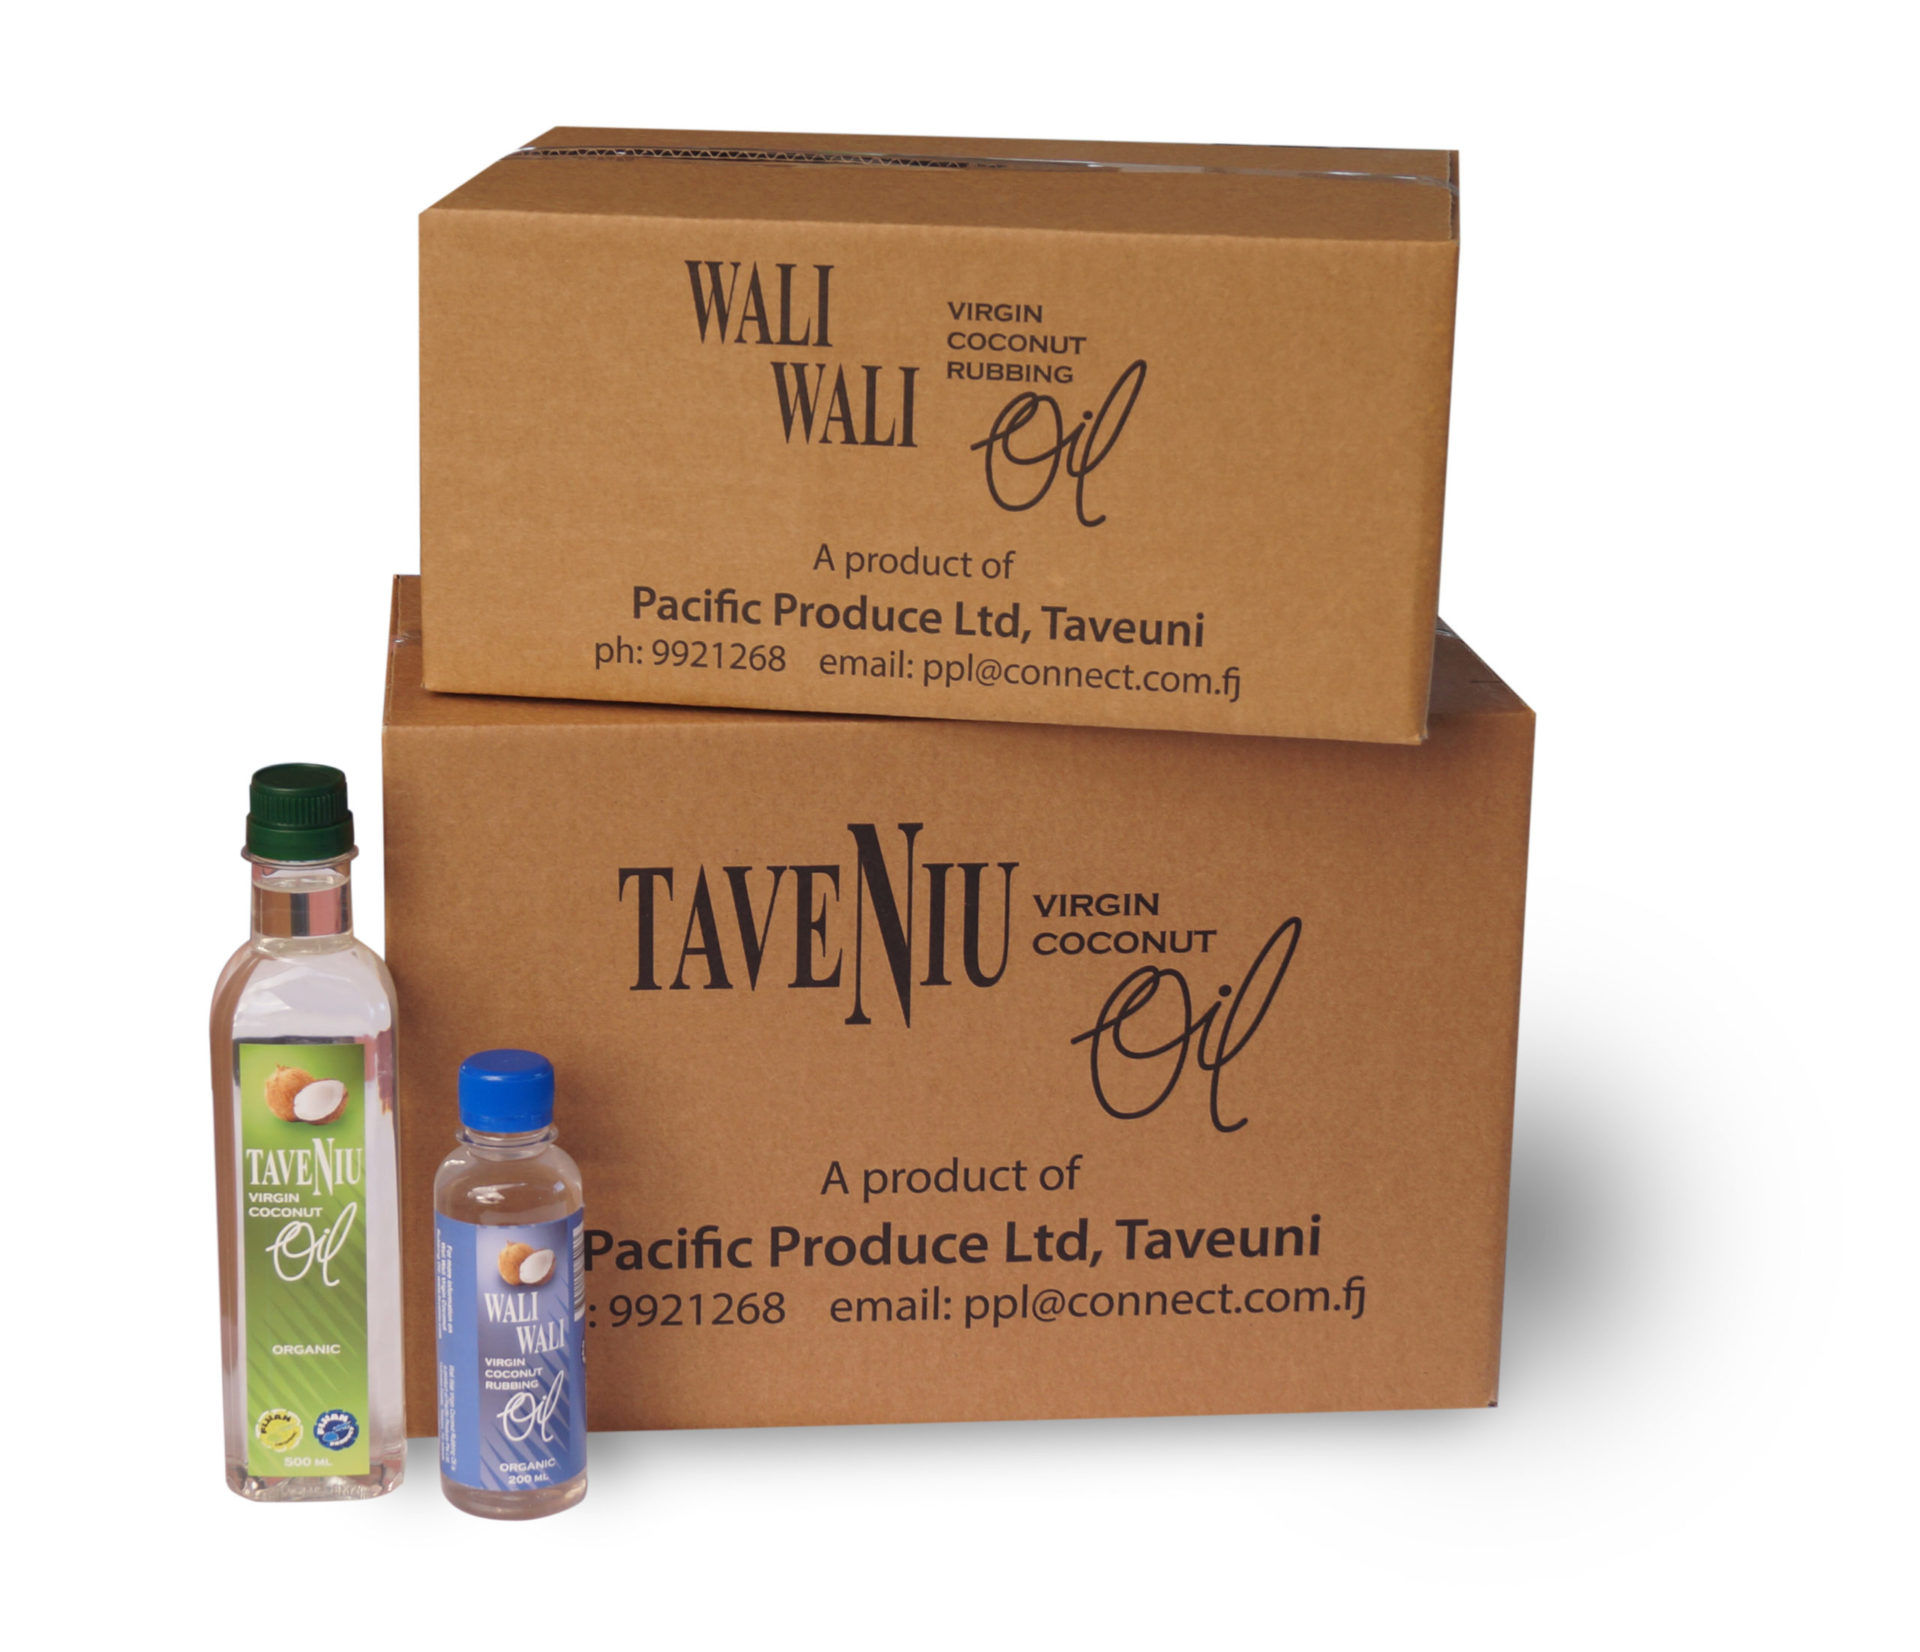 TaveNiu Virgin Coconut Oil Product Photos (2)